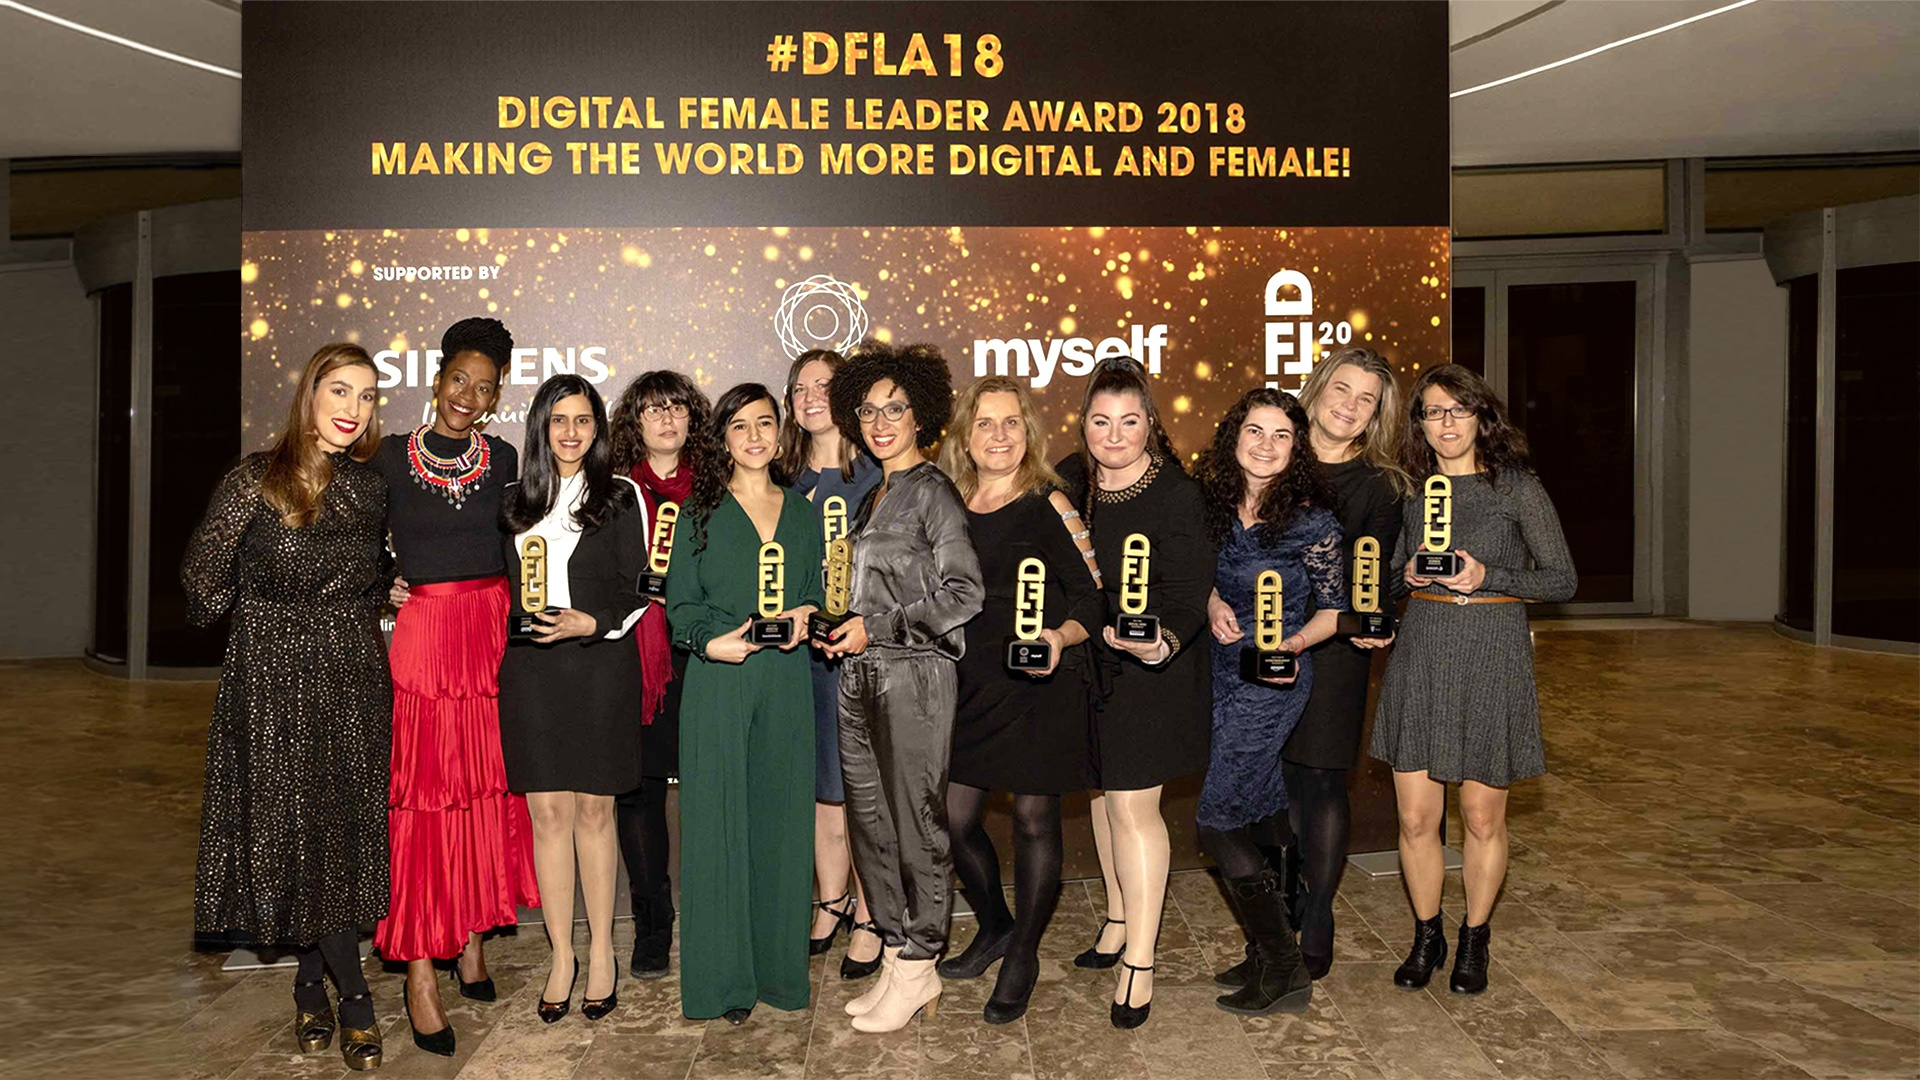 Digital Female Leader Award 2018